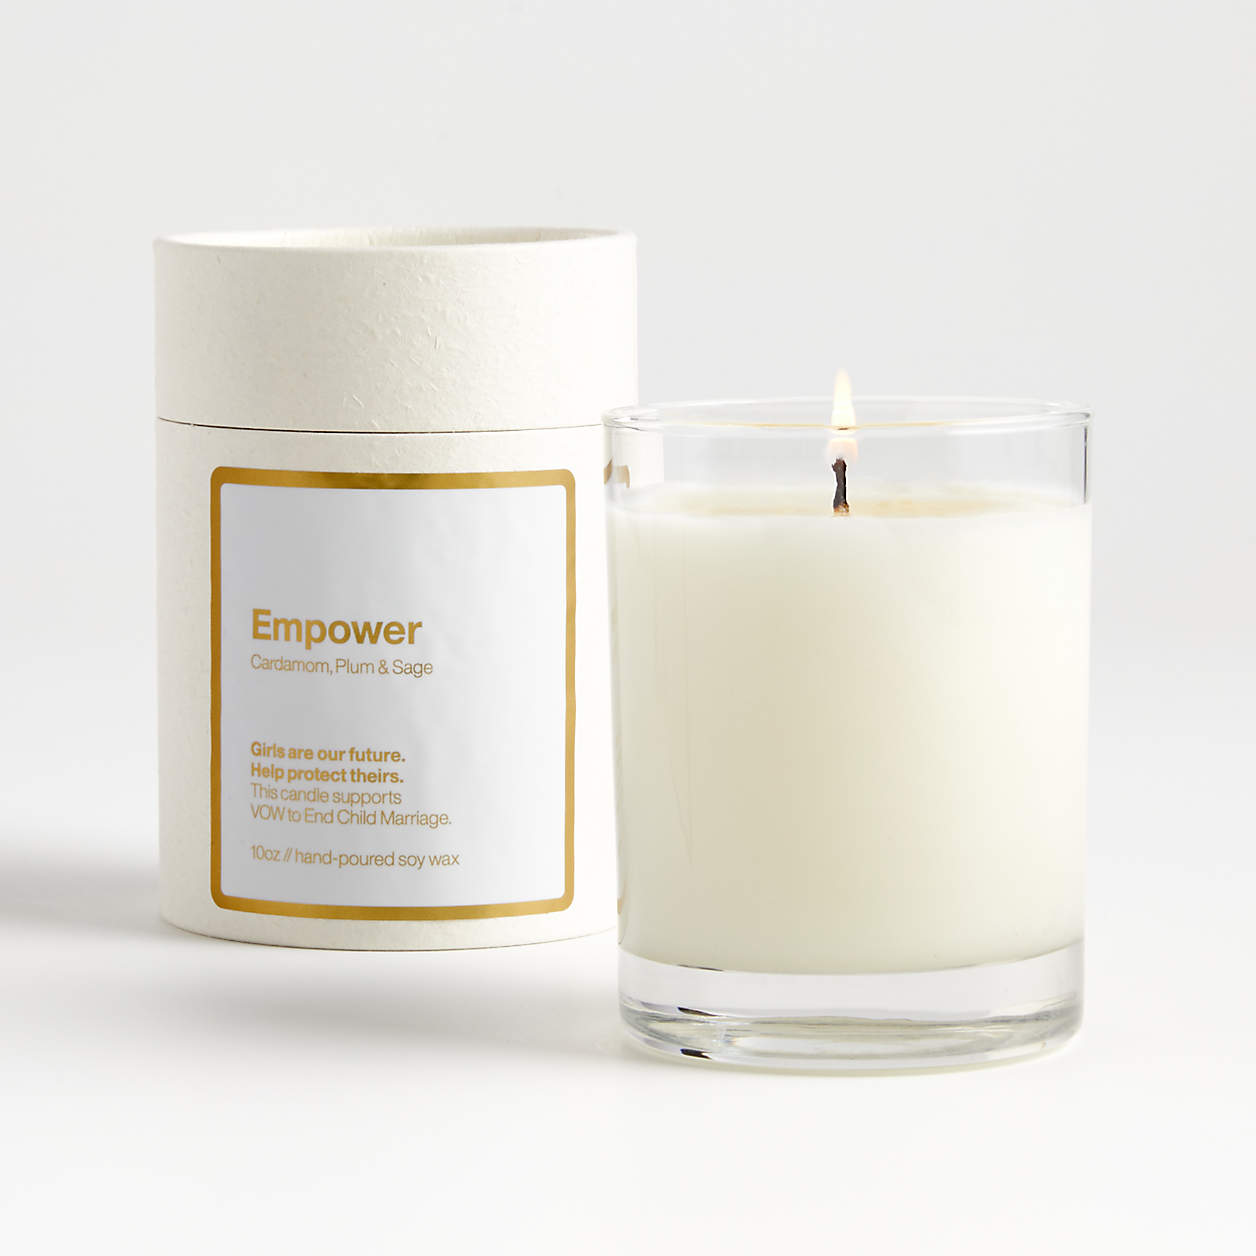 empower vow candle